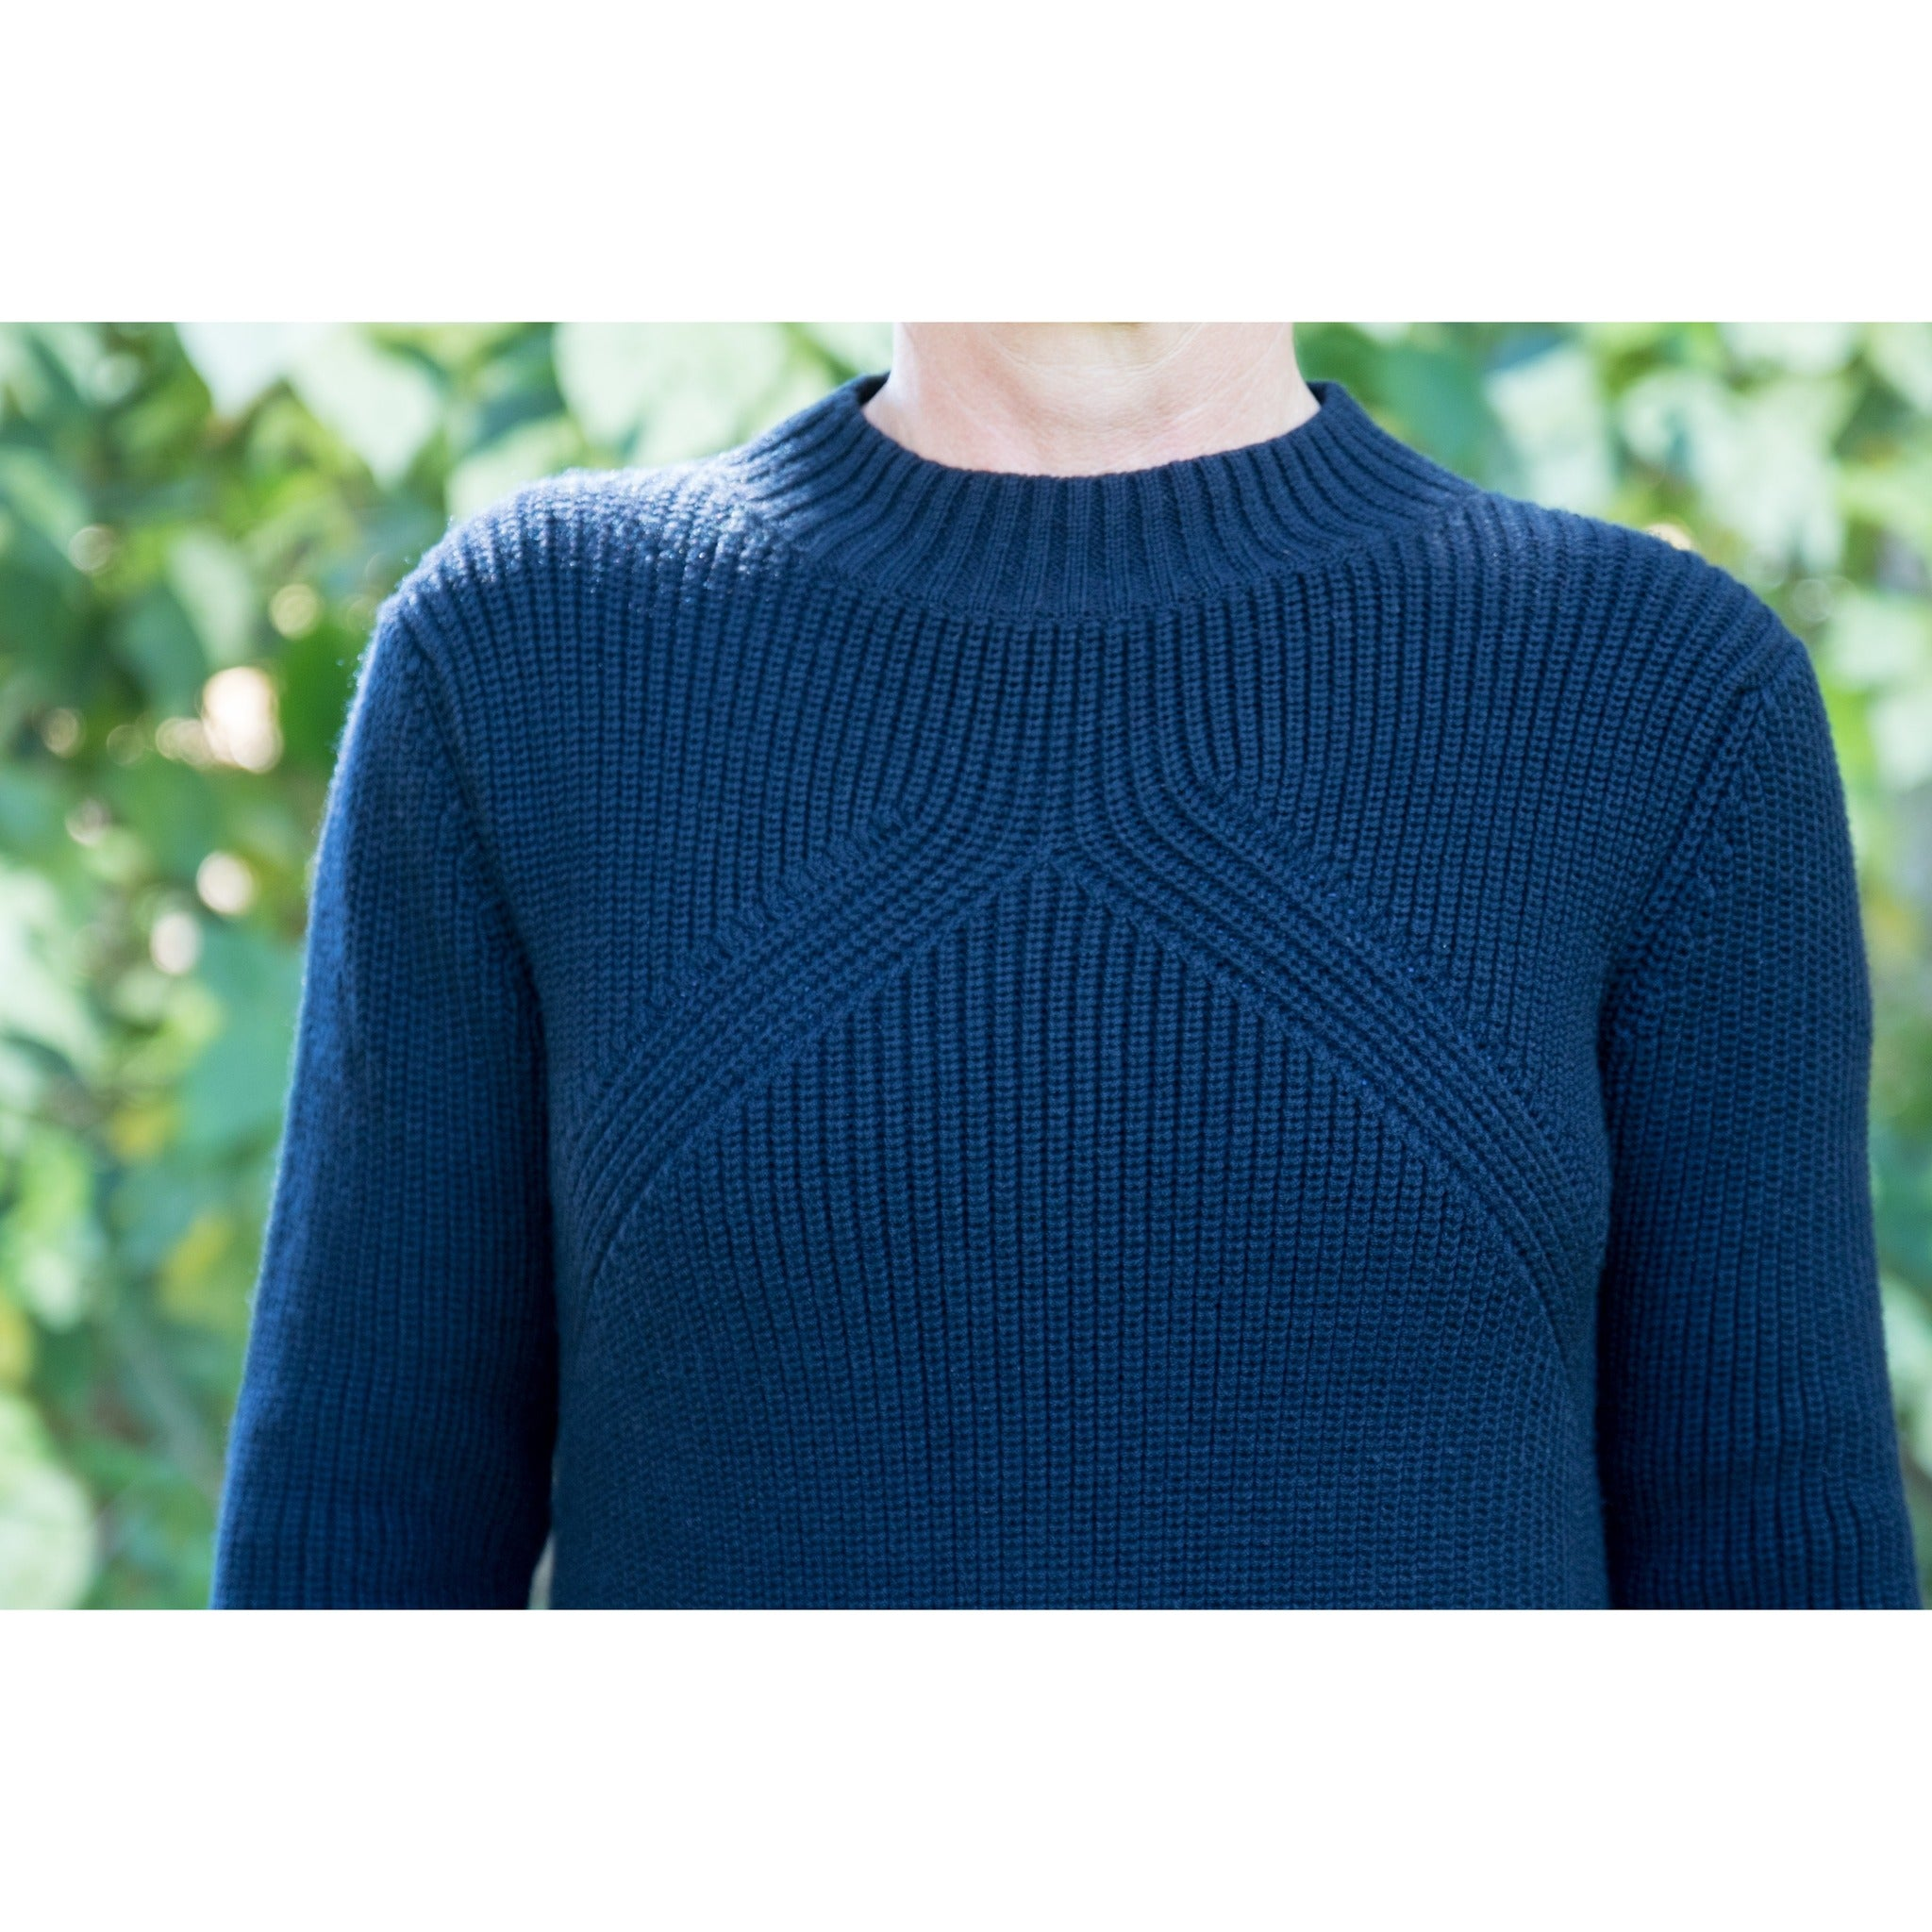 Nazca Knit Sweater - LONGRASS STYLE